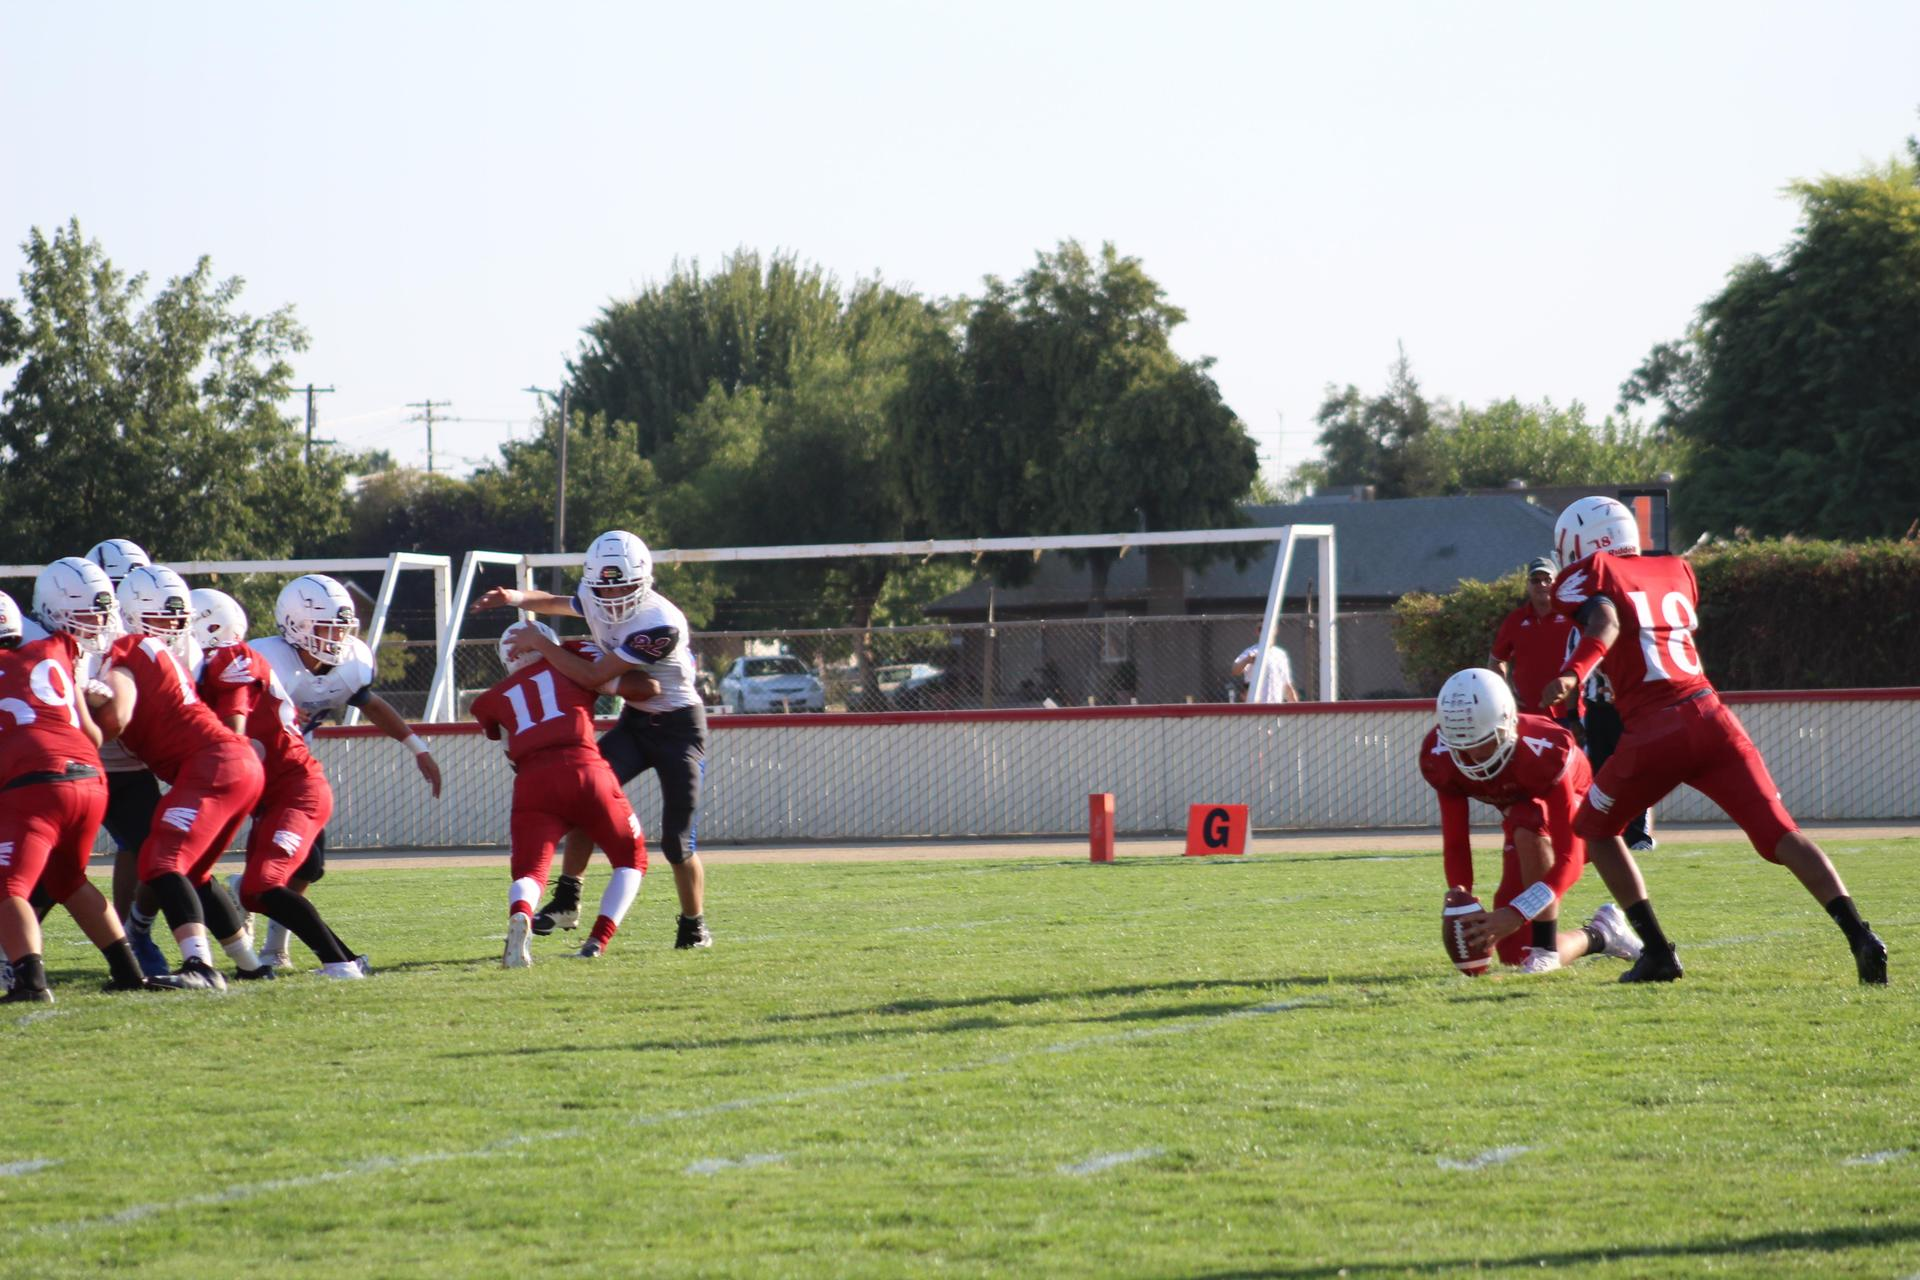 JV football players in action vs Immanuel